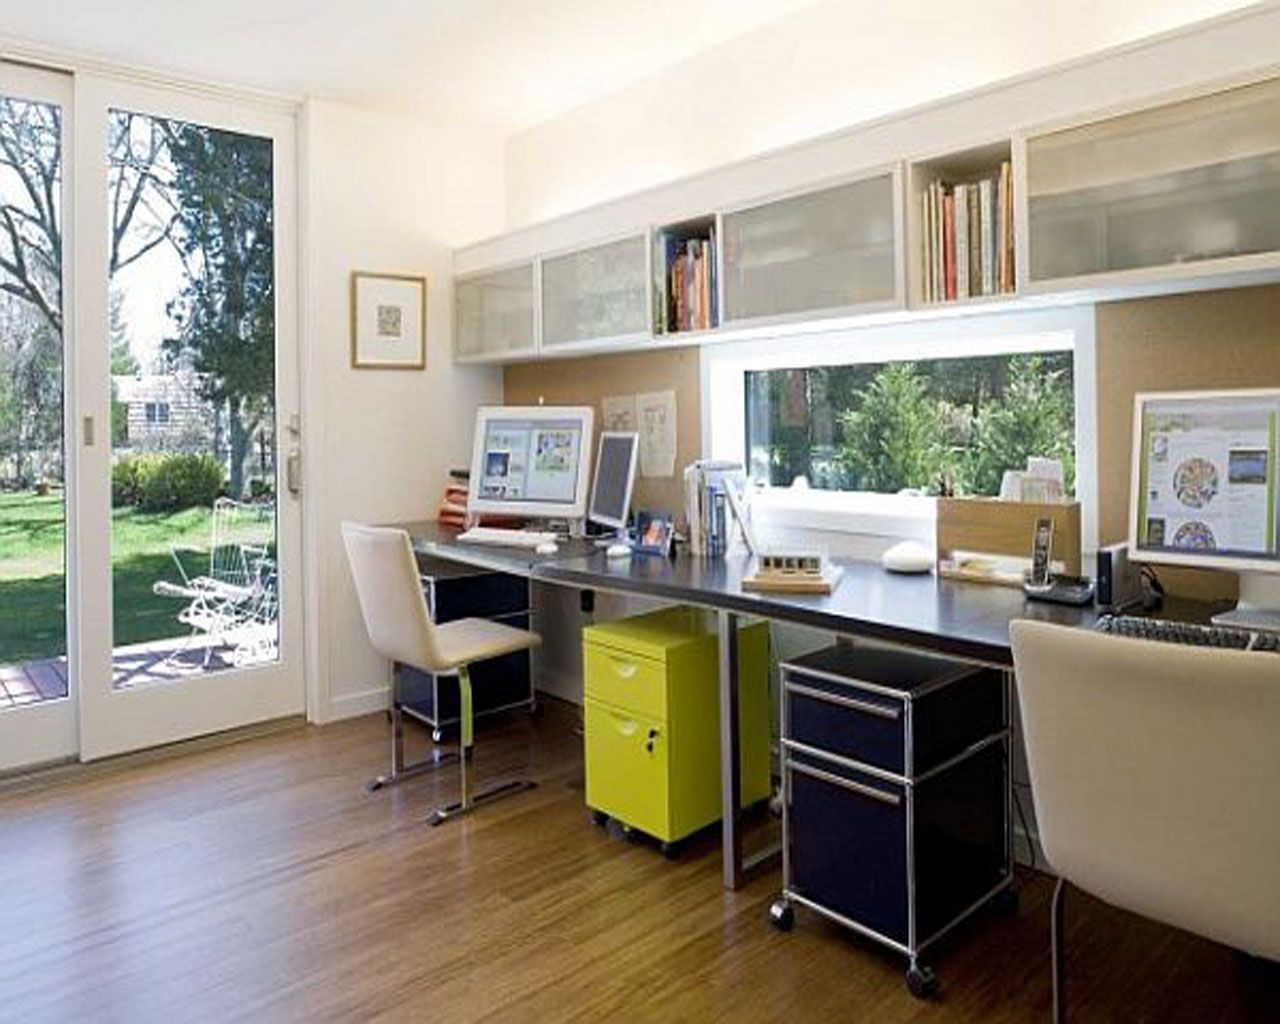 Fabulous 17 Best Images About Classy Work Spaces On Pinterest Home Office Largest Home Design Picture Inspirations Pitcheantrous